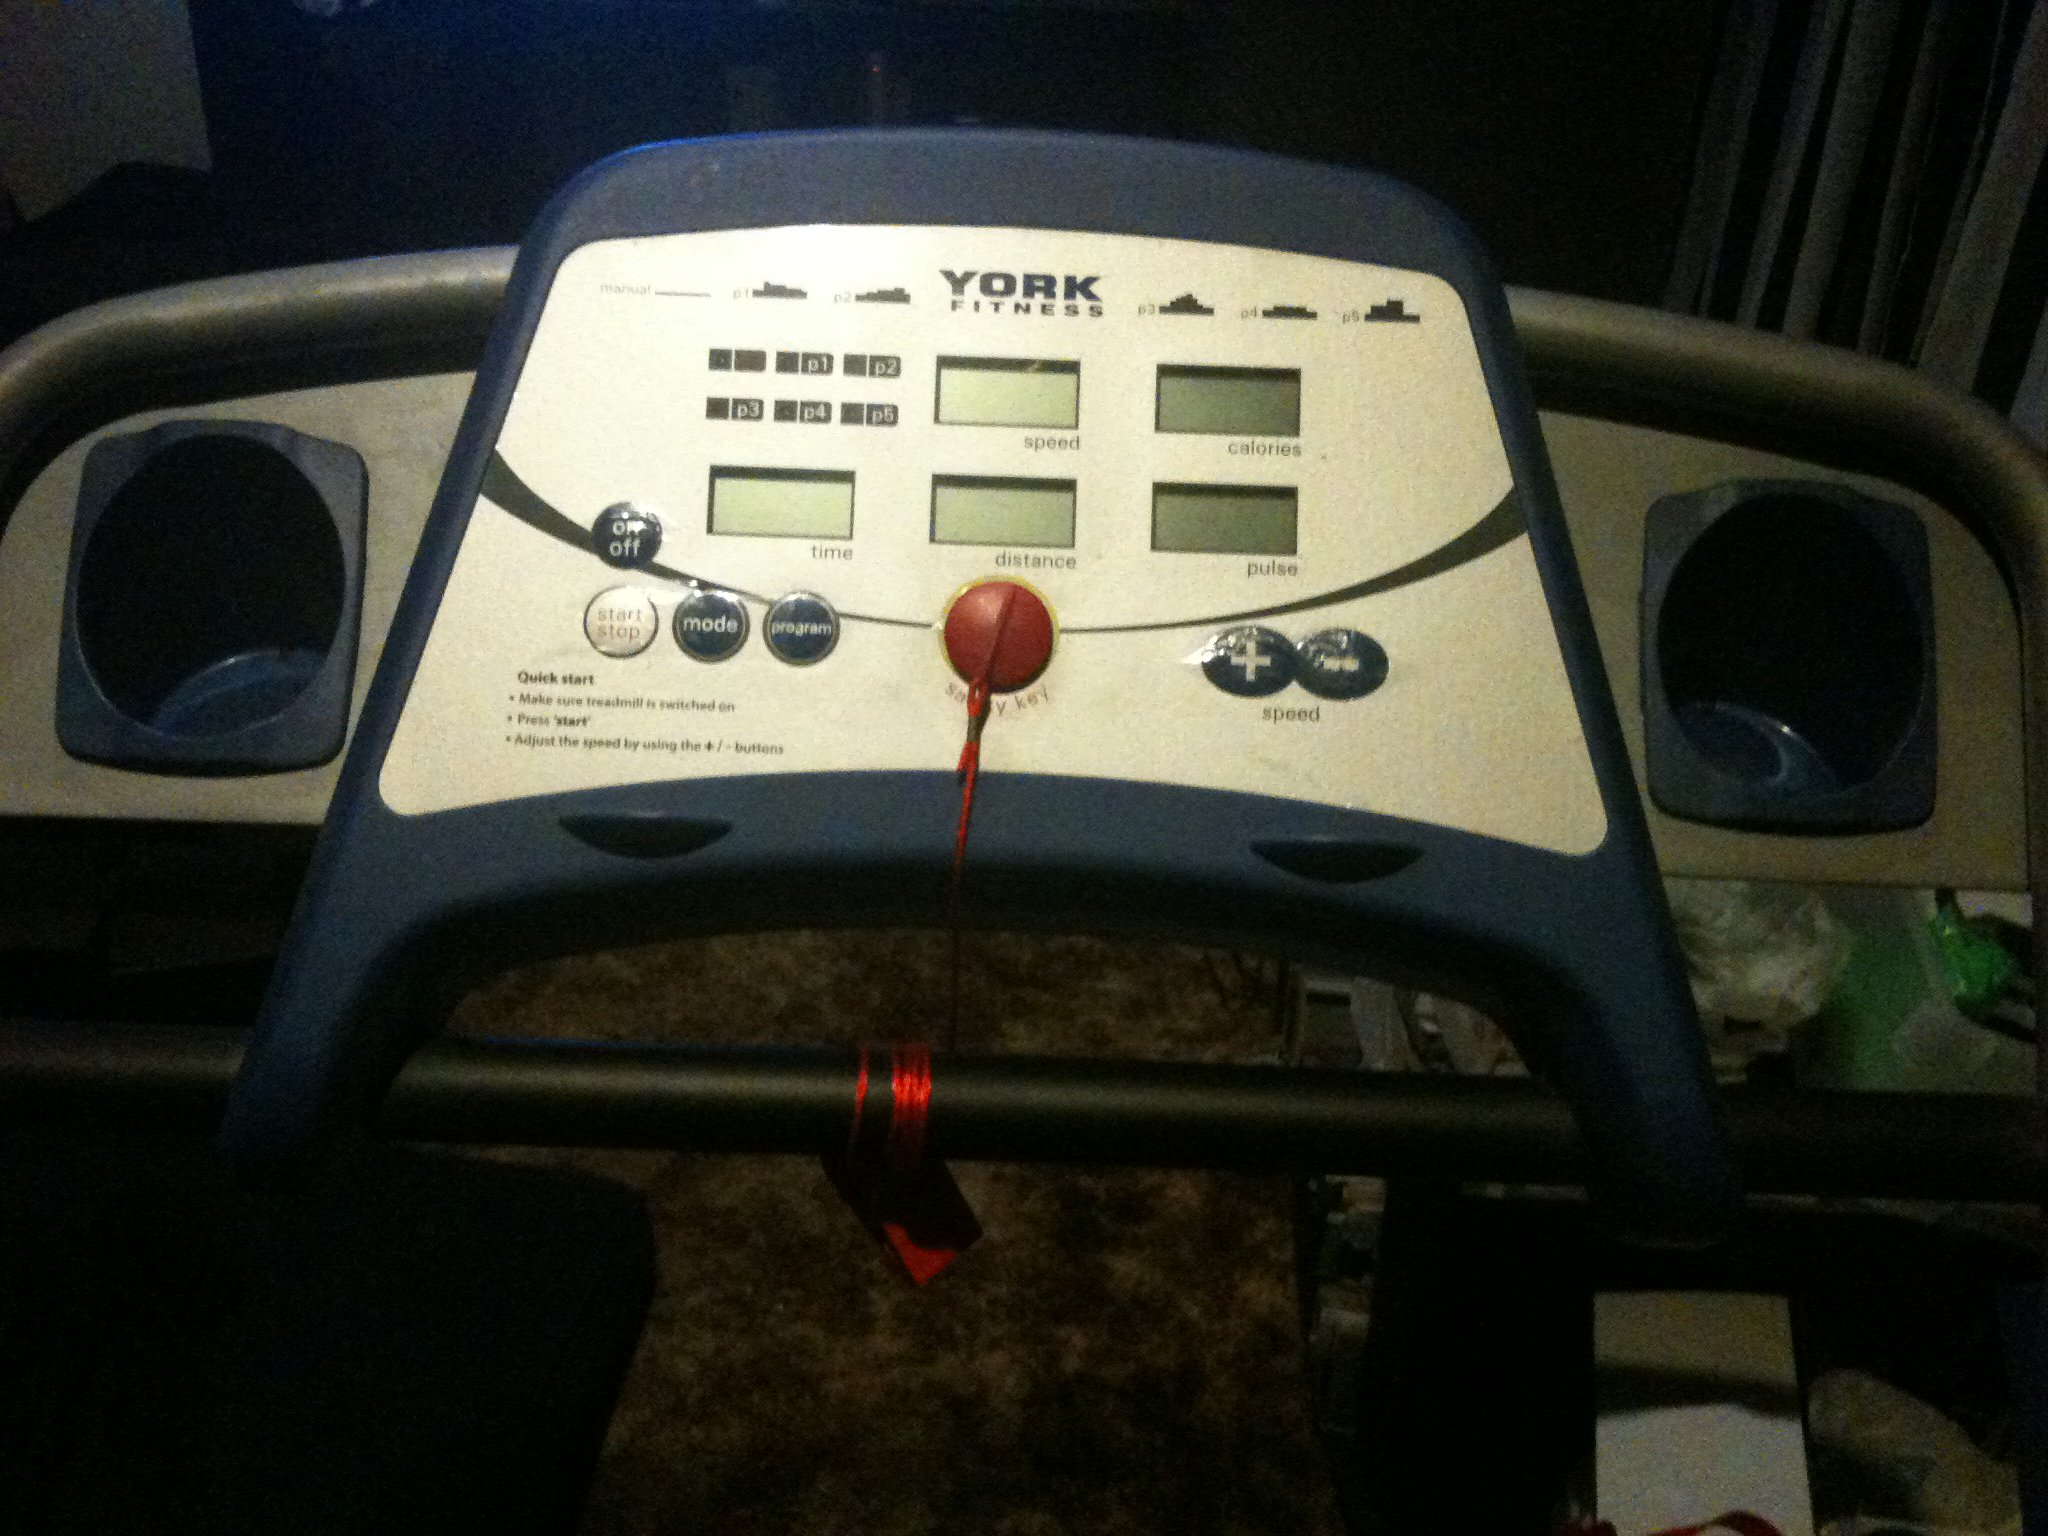 FOR SALE: York fitness inspiration treadmill